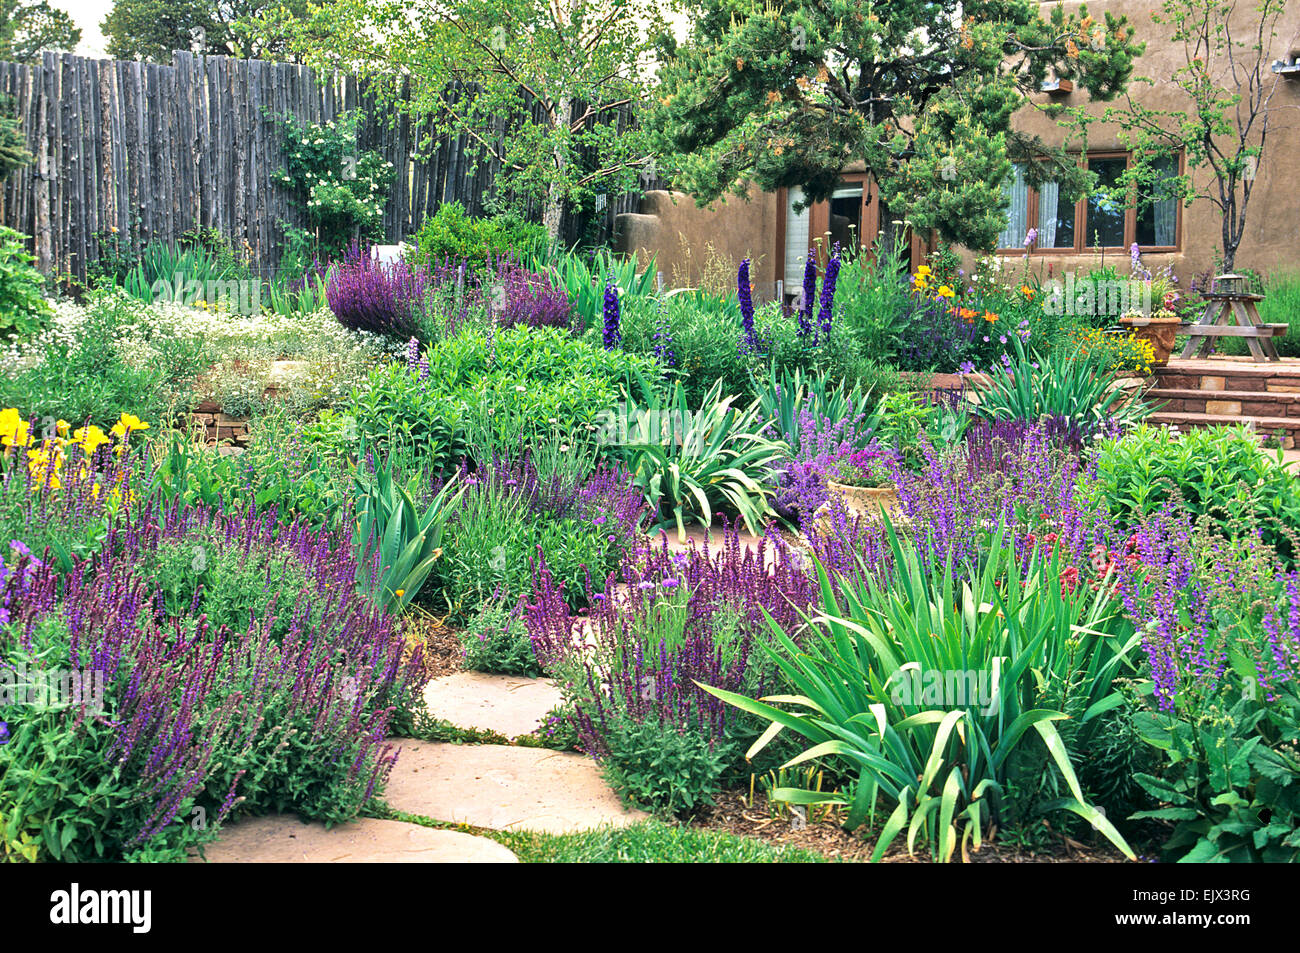 landscape architect and garden designer catherine clemens conceived and created this colorful and drought tolerant stock - Garden Design Drought Tolerant